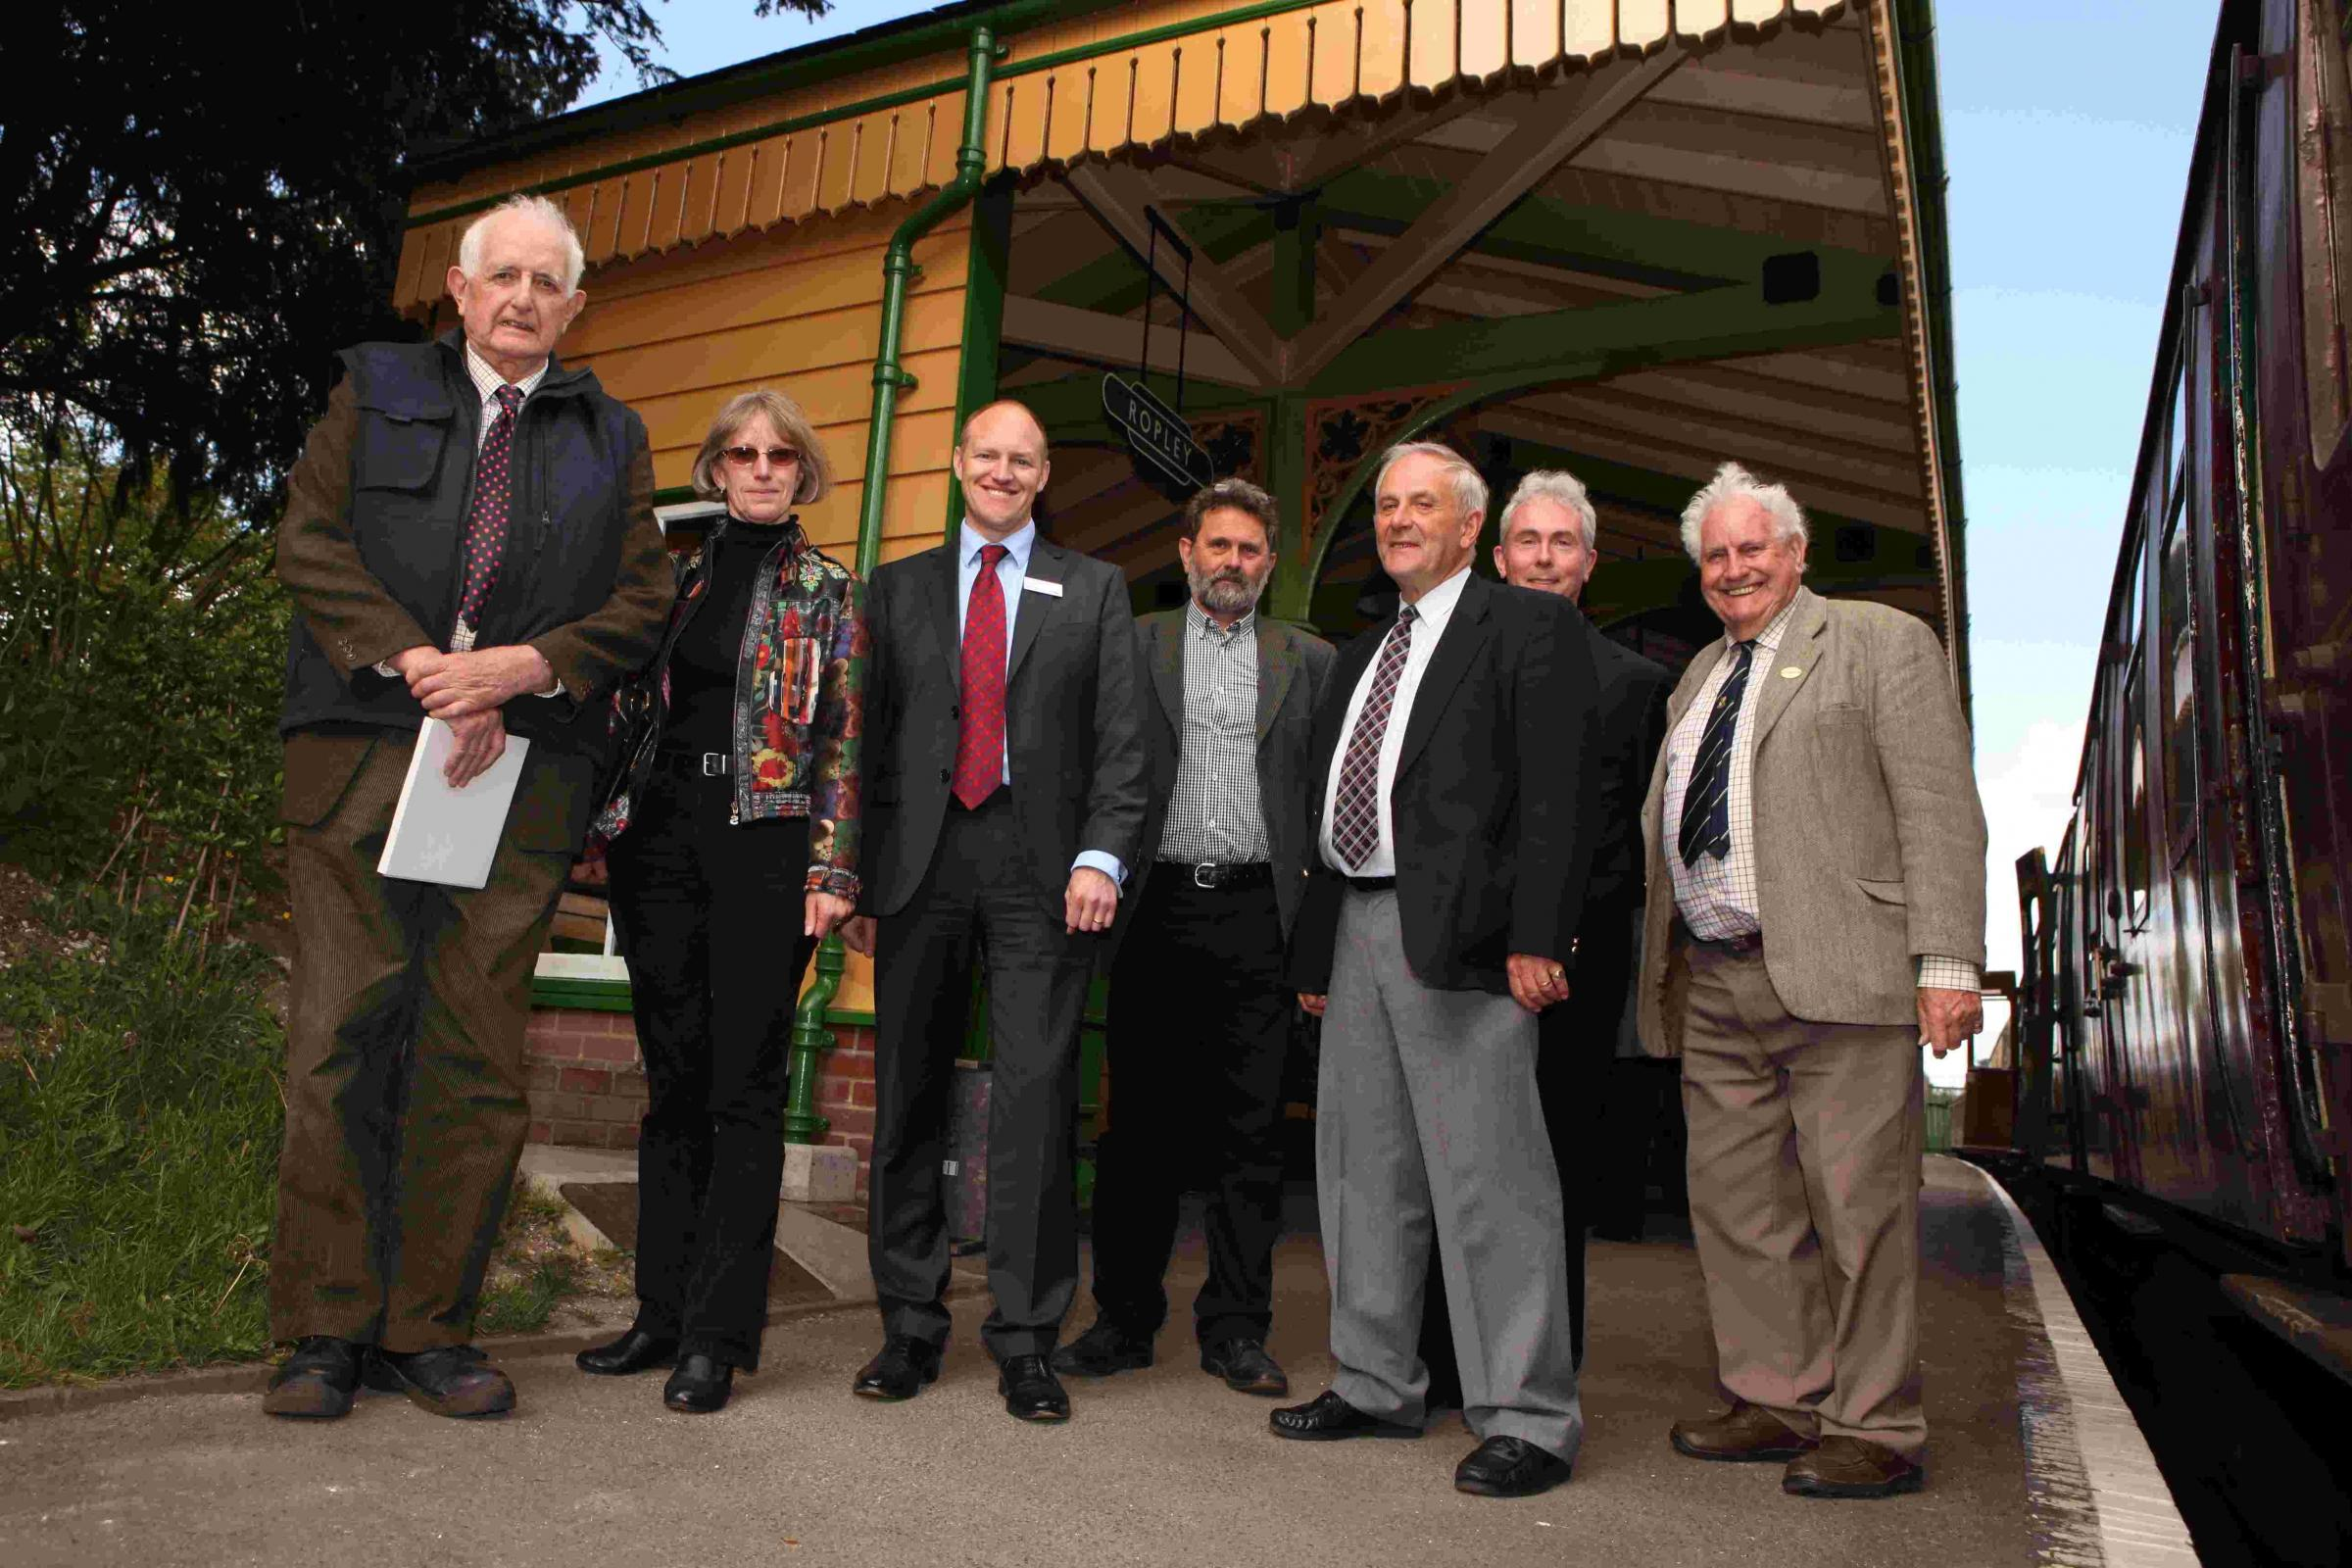 Members of the Mid Hants Railway Preservation Society and Hampshire Railway Ltd at the official opening.